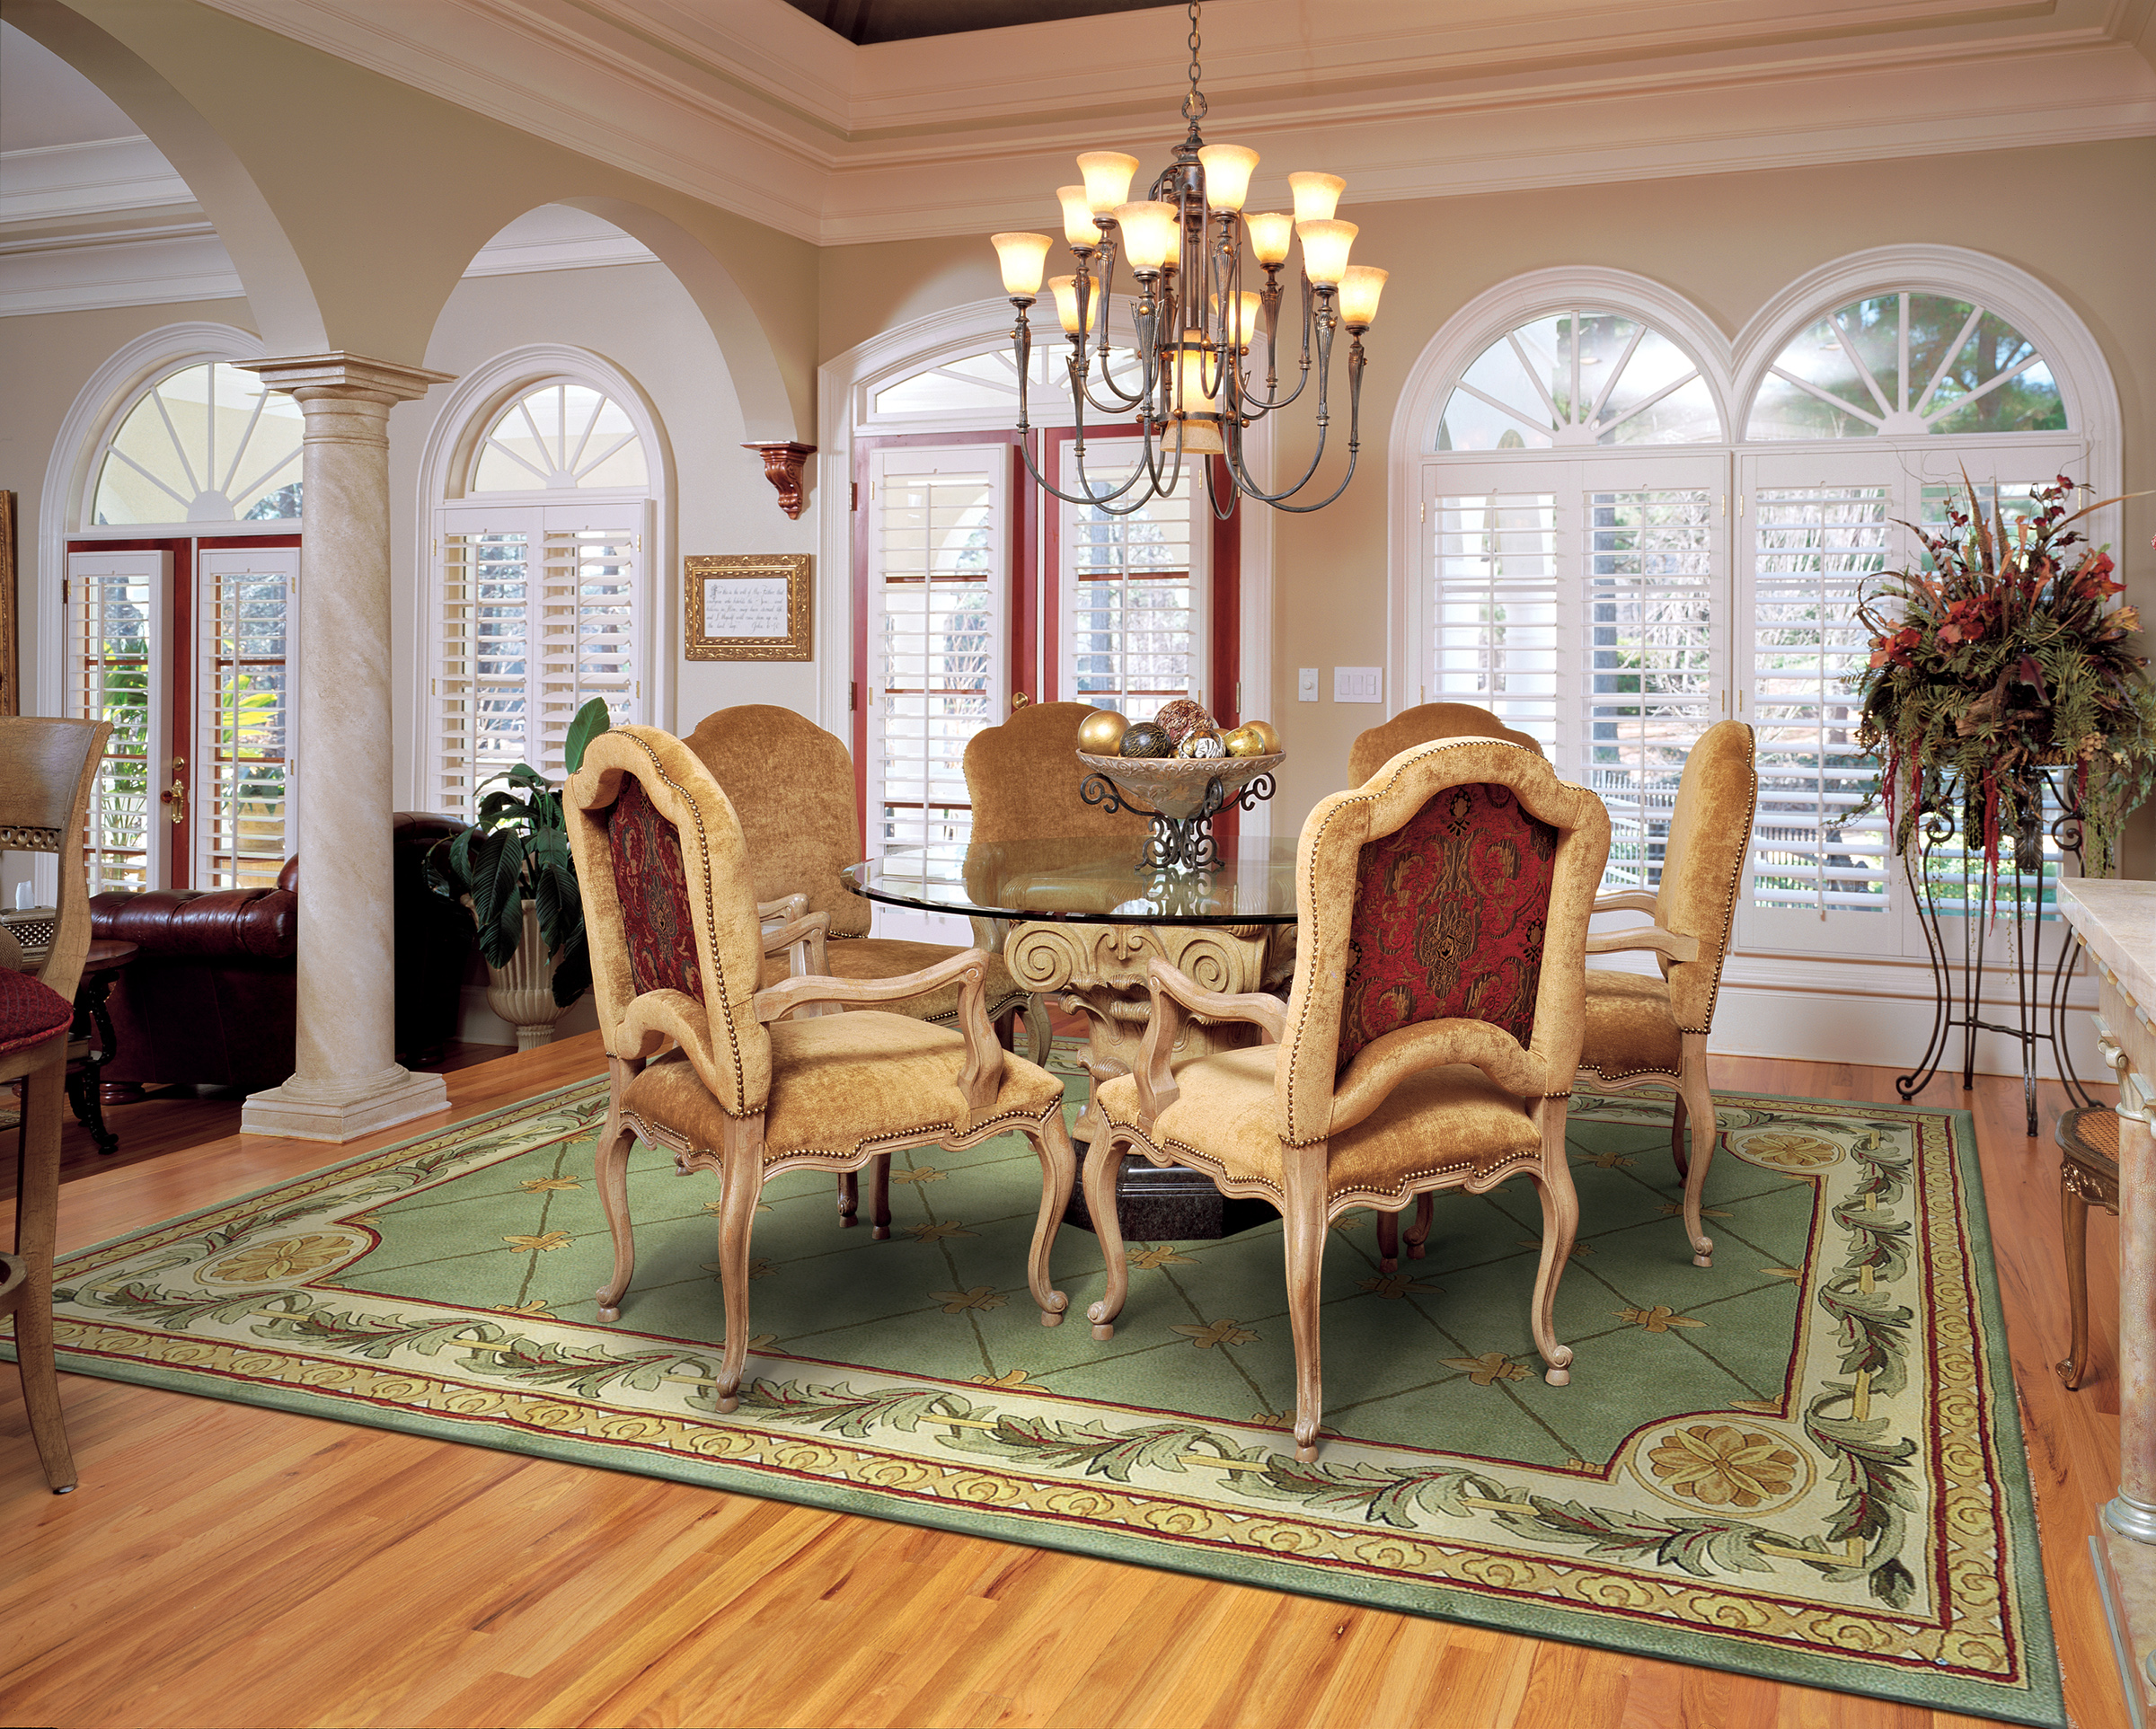 dining tables  Rug  Home